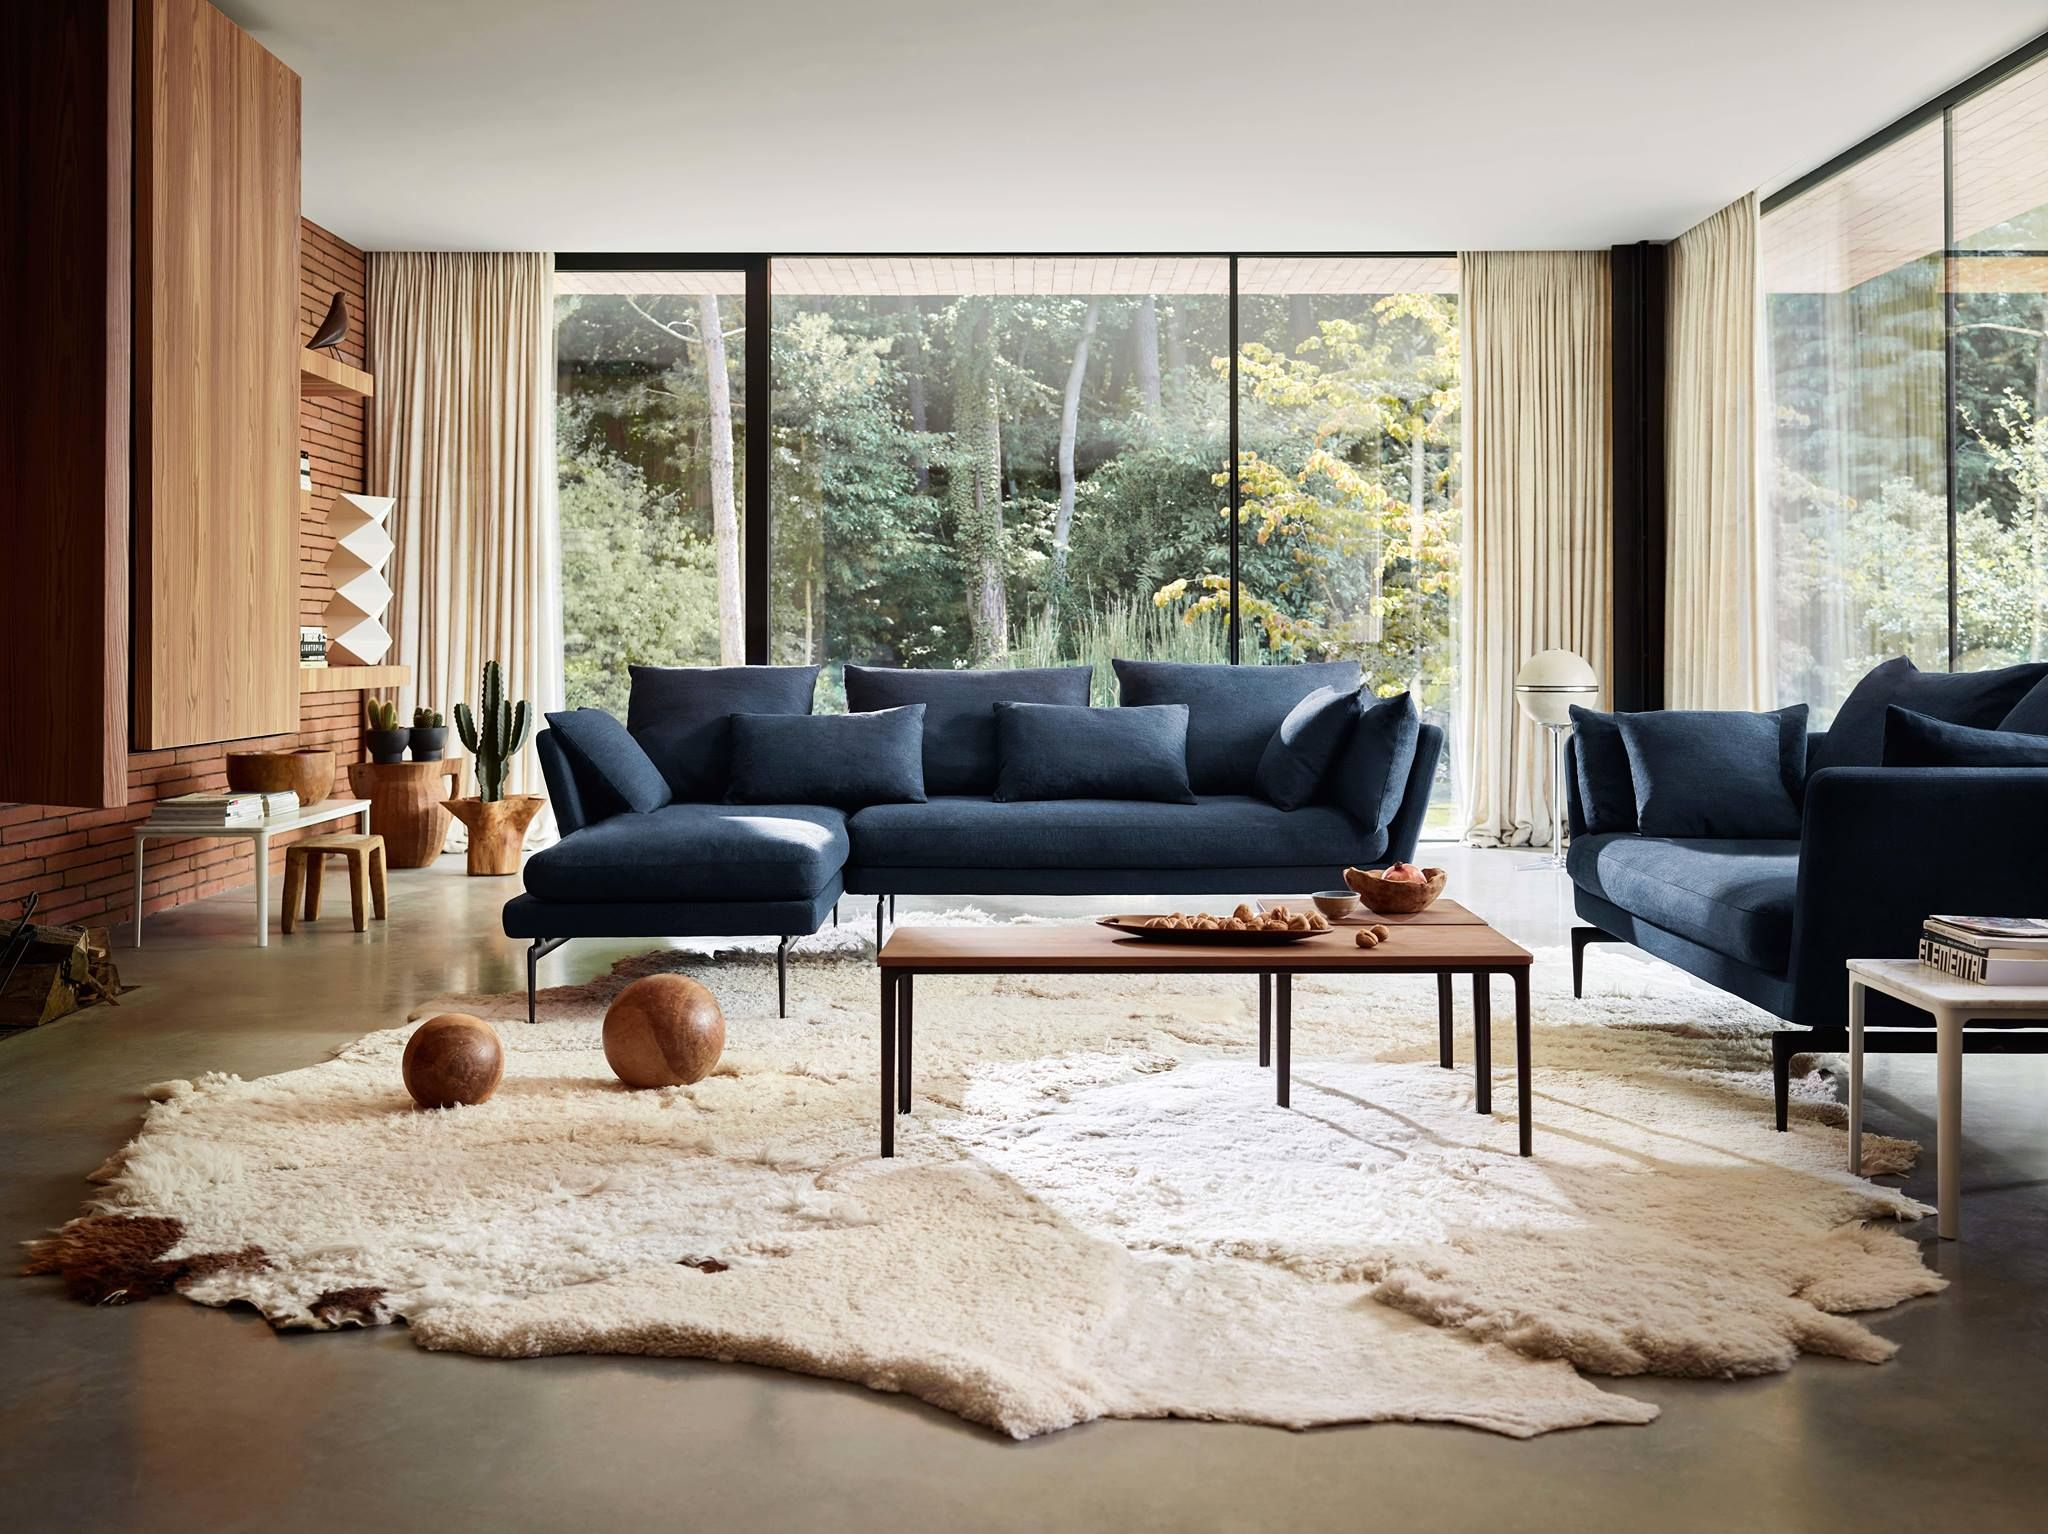 Vitra Restrained Elegance With A Touch Of Mid Century Design Is The Formal Contemporary Designers Furniture Vitra Suita Sofa Sofa Design Contemporary Interior Design